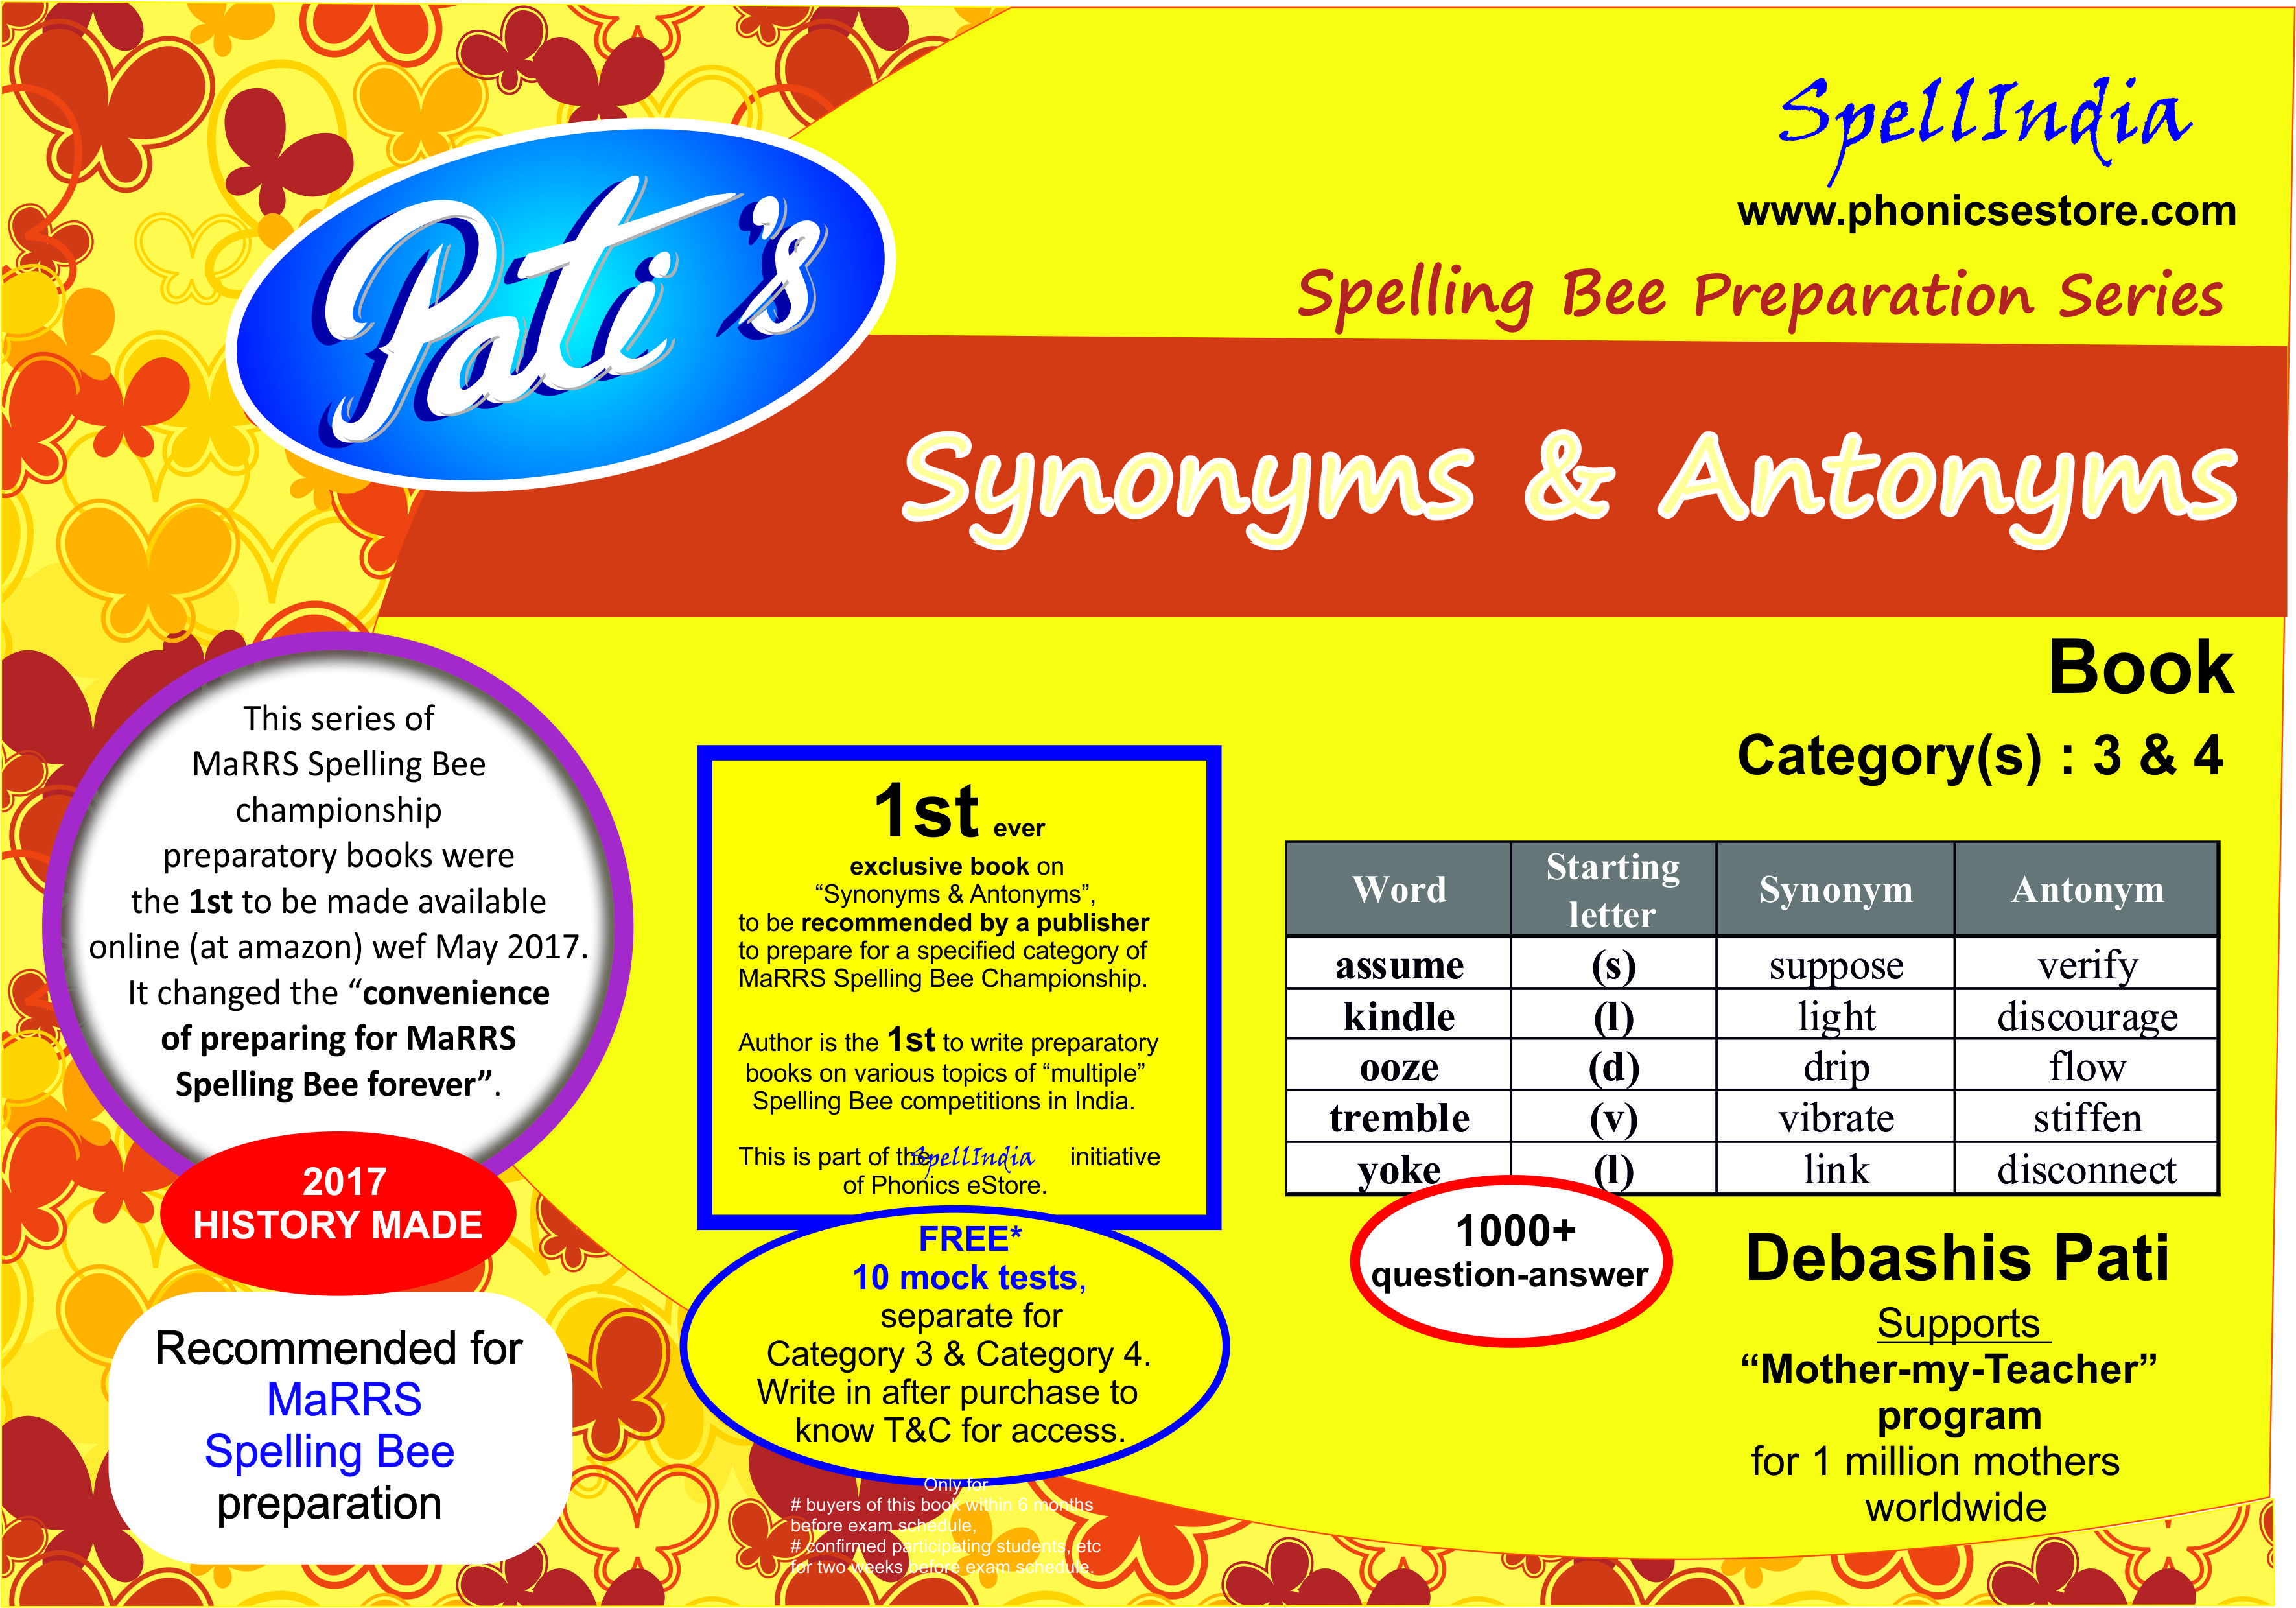 synonyms antonyms marrs spelling bee book